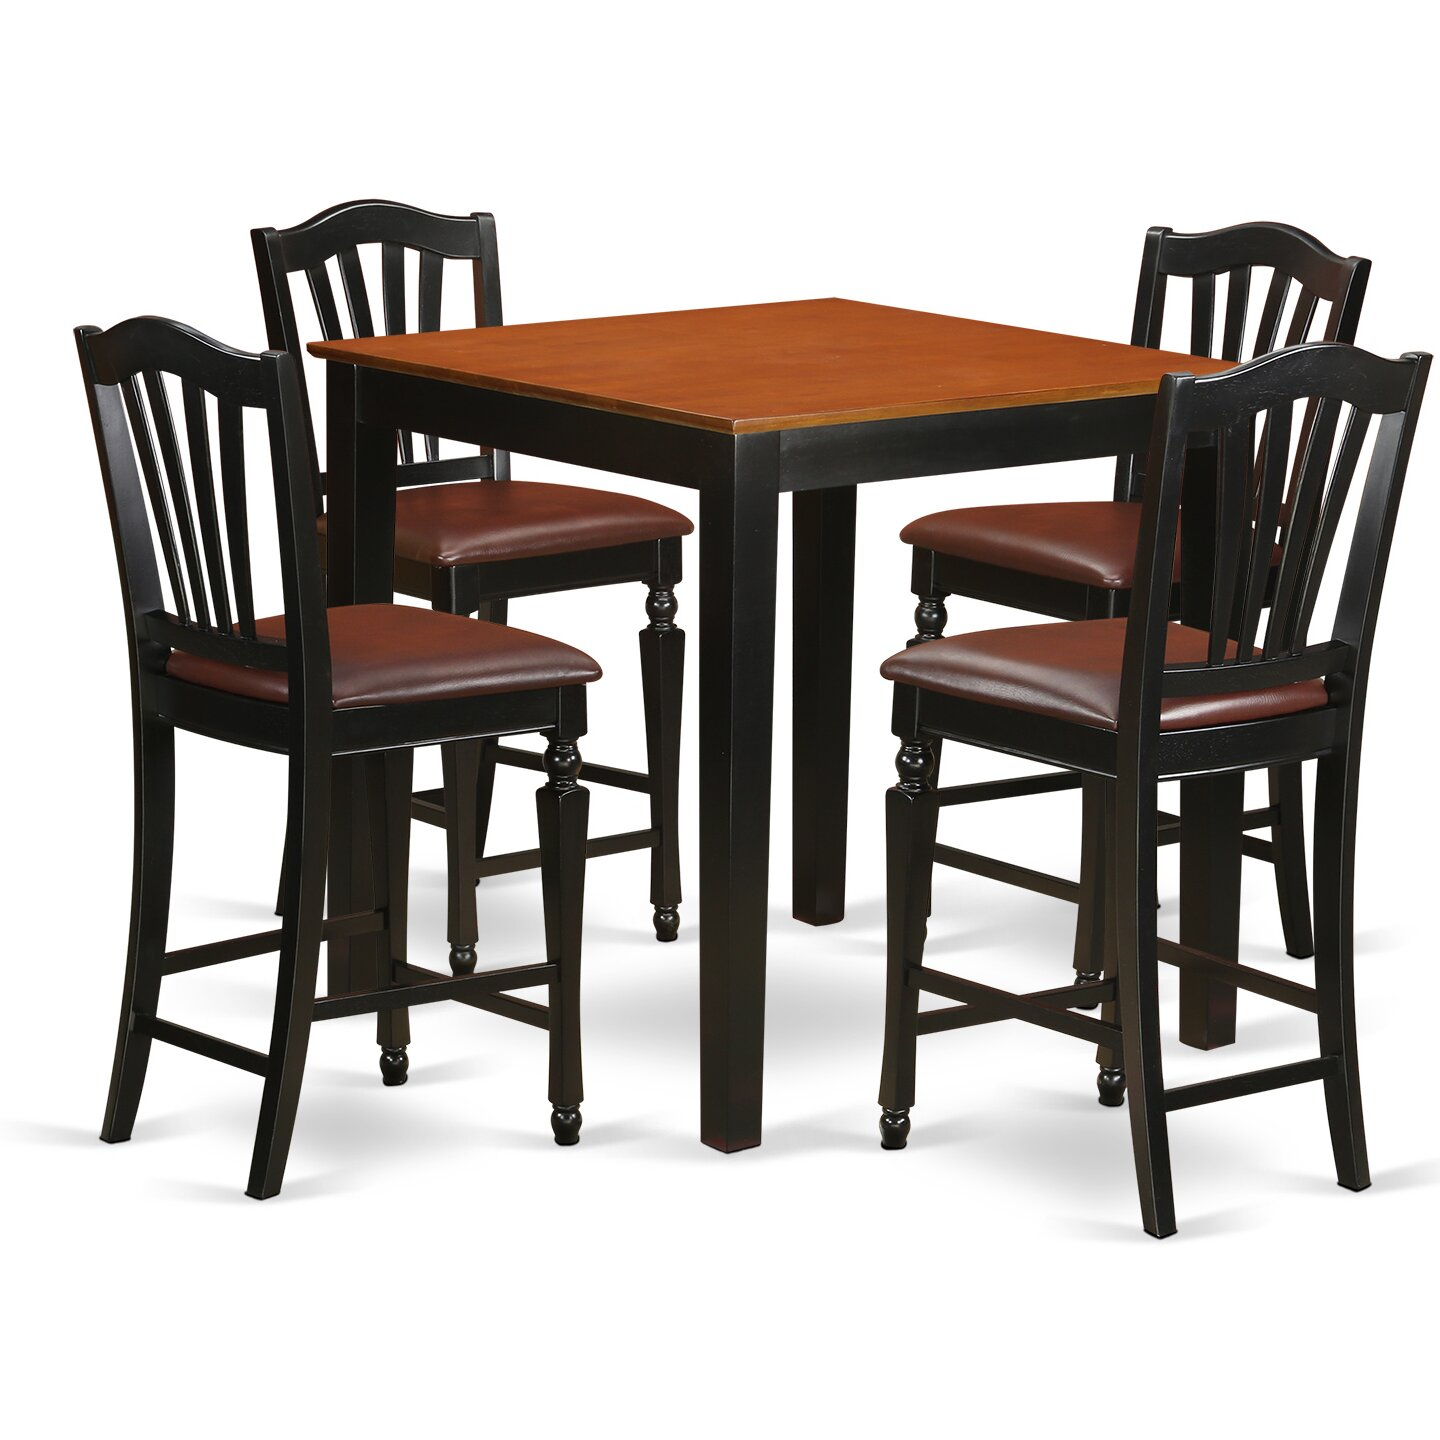 east west 5 piece counter height pub table set. Black Bedroom Furniture Sets. Home Design Ideas